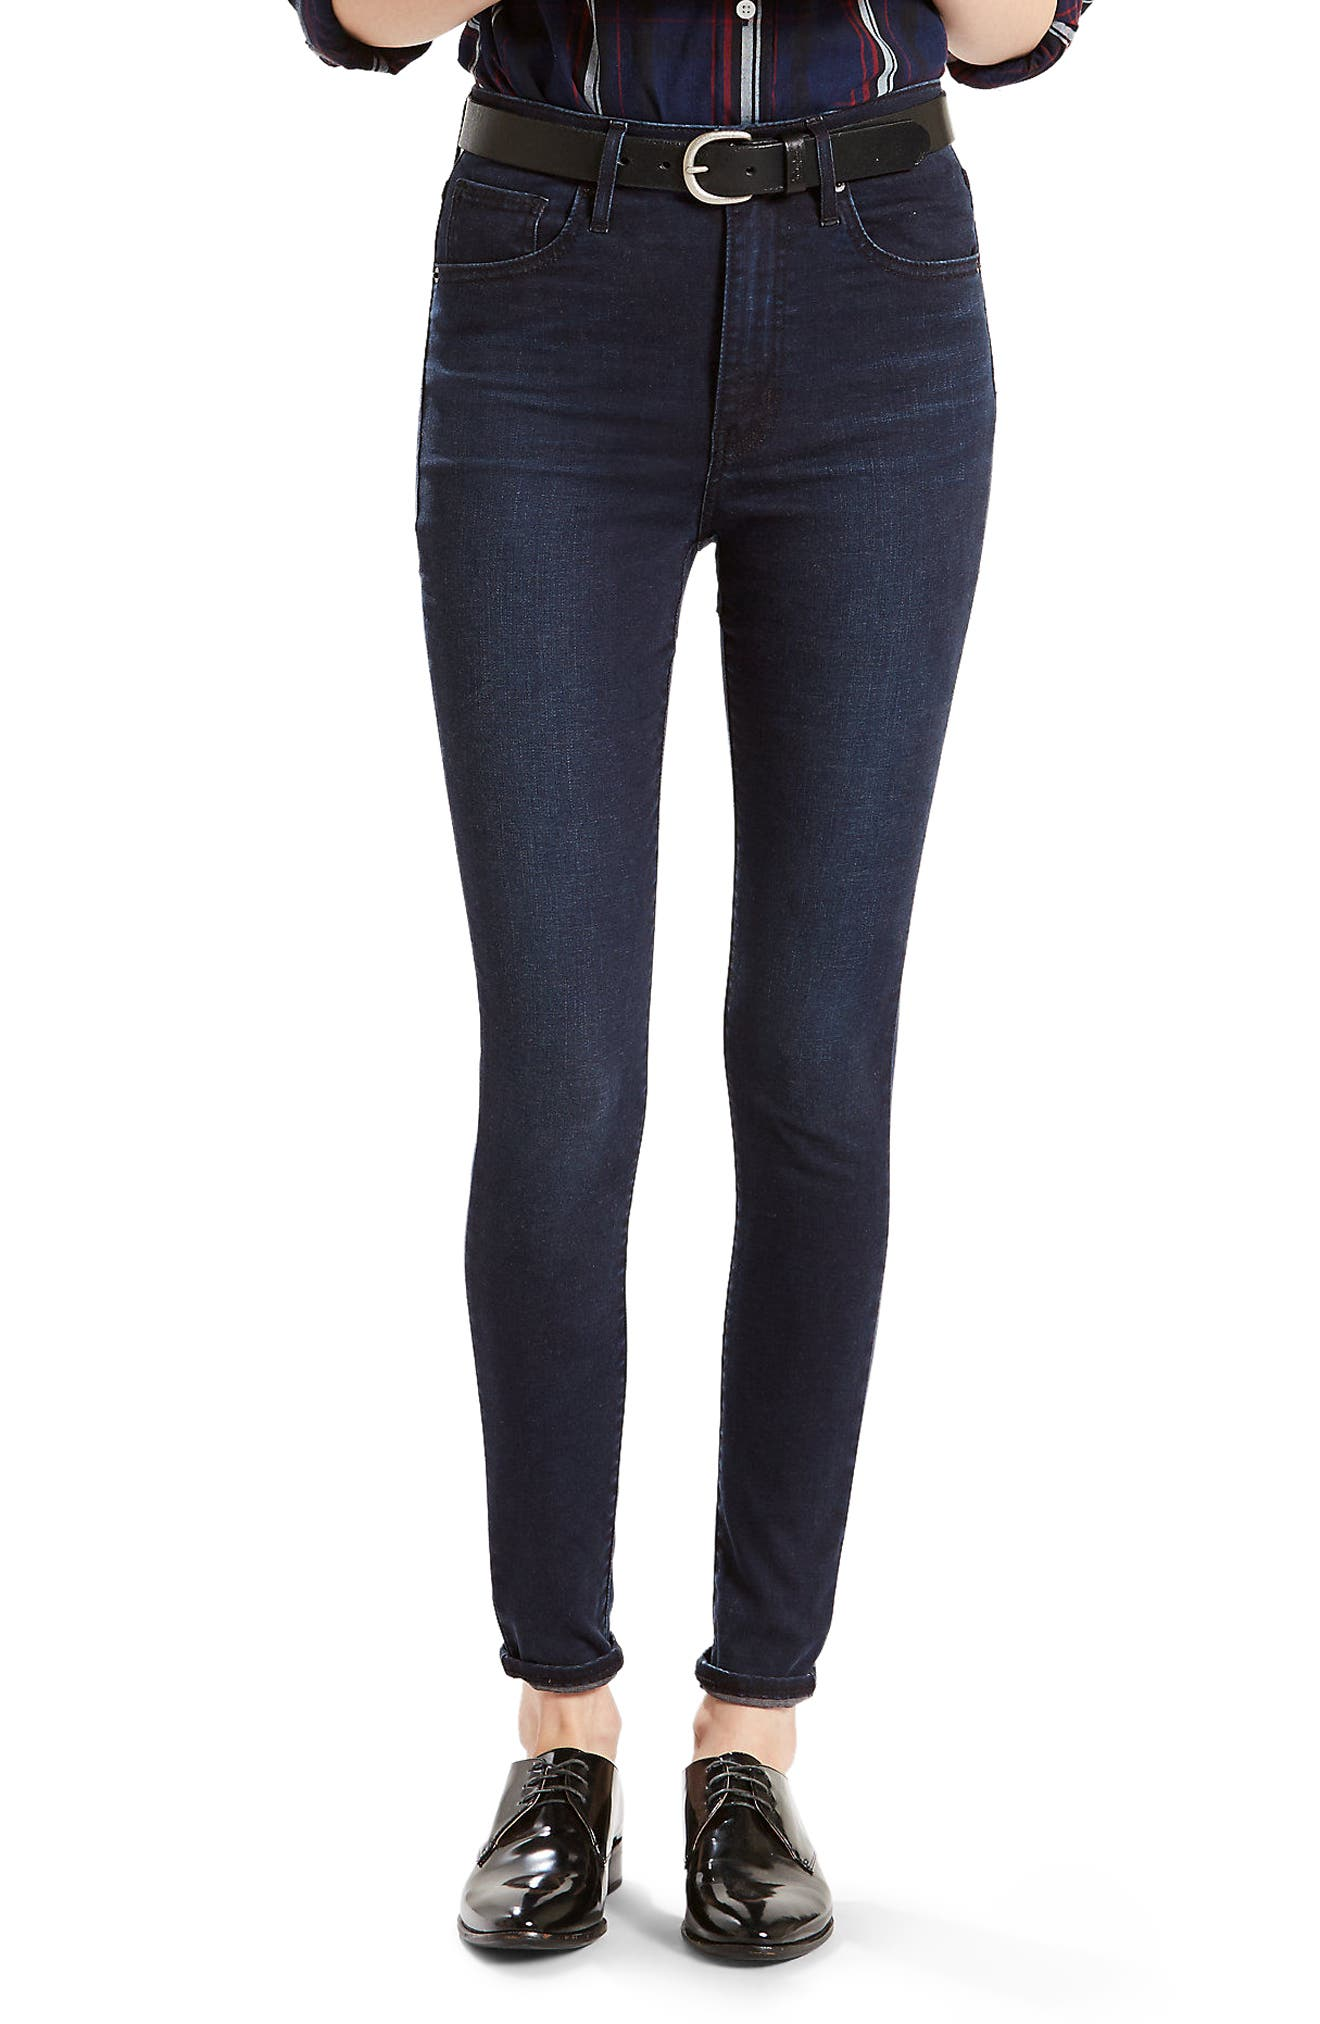 Mile High High Waist Super Skinny Jeans,                             Main thumbnail 1, color,                             420